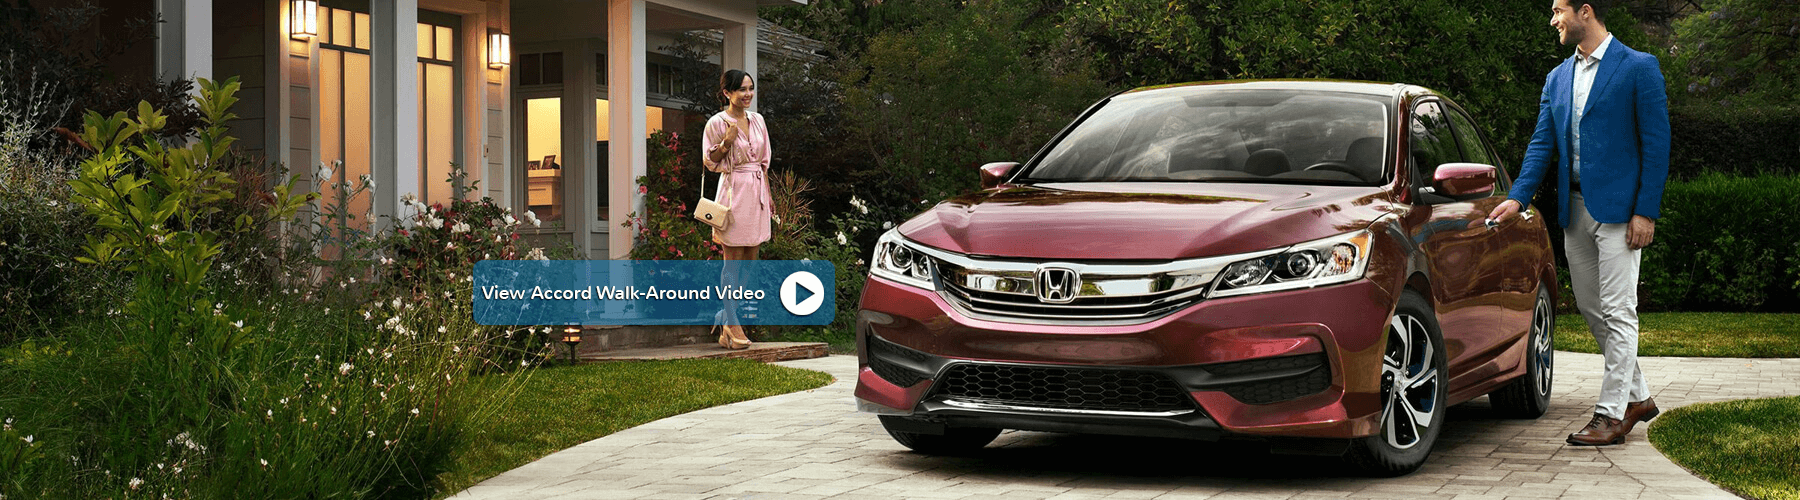 2017 Honda Accord Sedan Banner